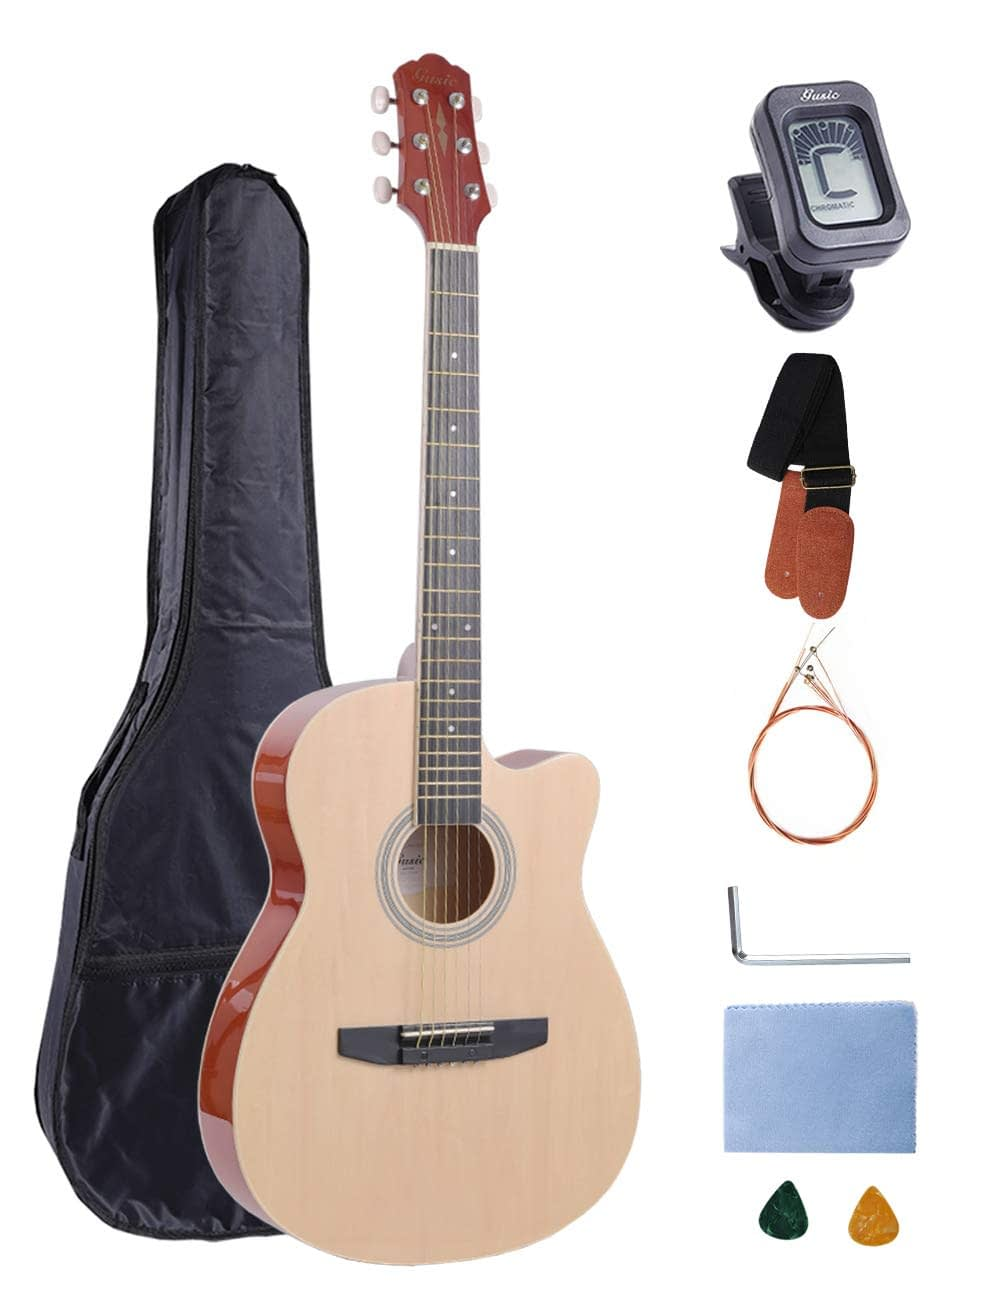 Acoustic Guitar Beginner Kid Guitar 38 Inch Steel Strings Guitar Starter Bundle Cutaway with Gig Bag Clip Tuner Strap 2 Picks and Wipe for Student Child Adult Learn to Play 8